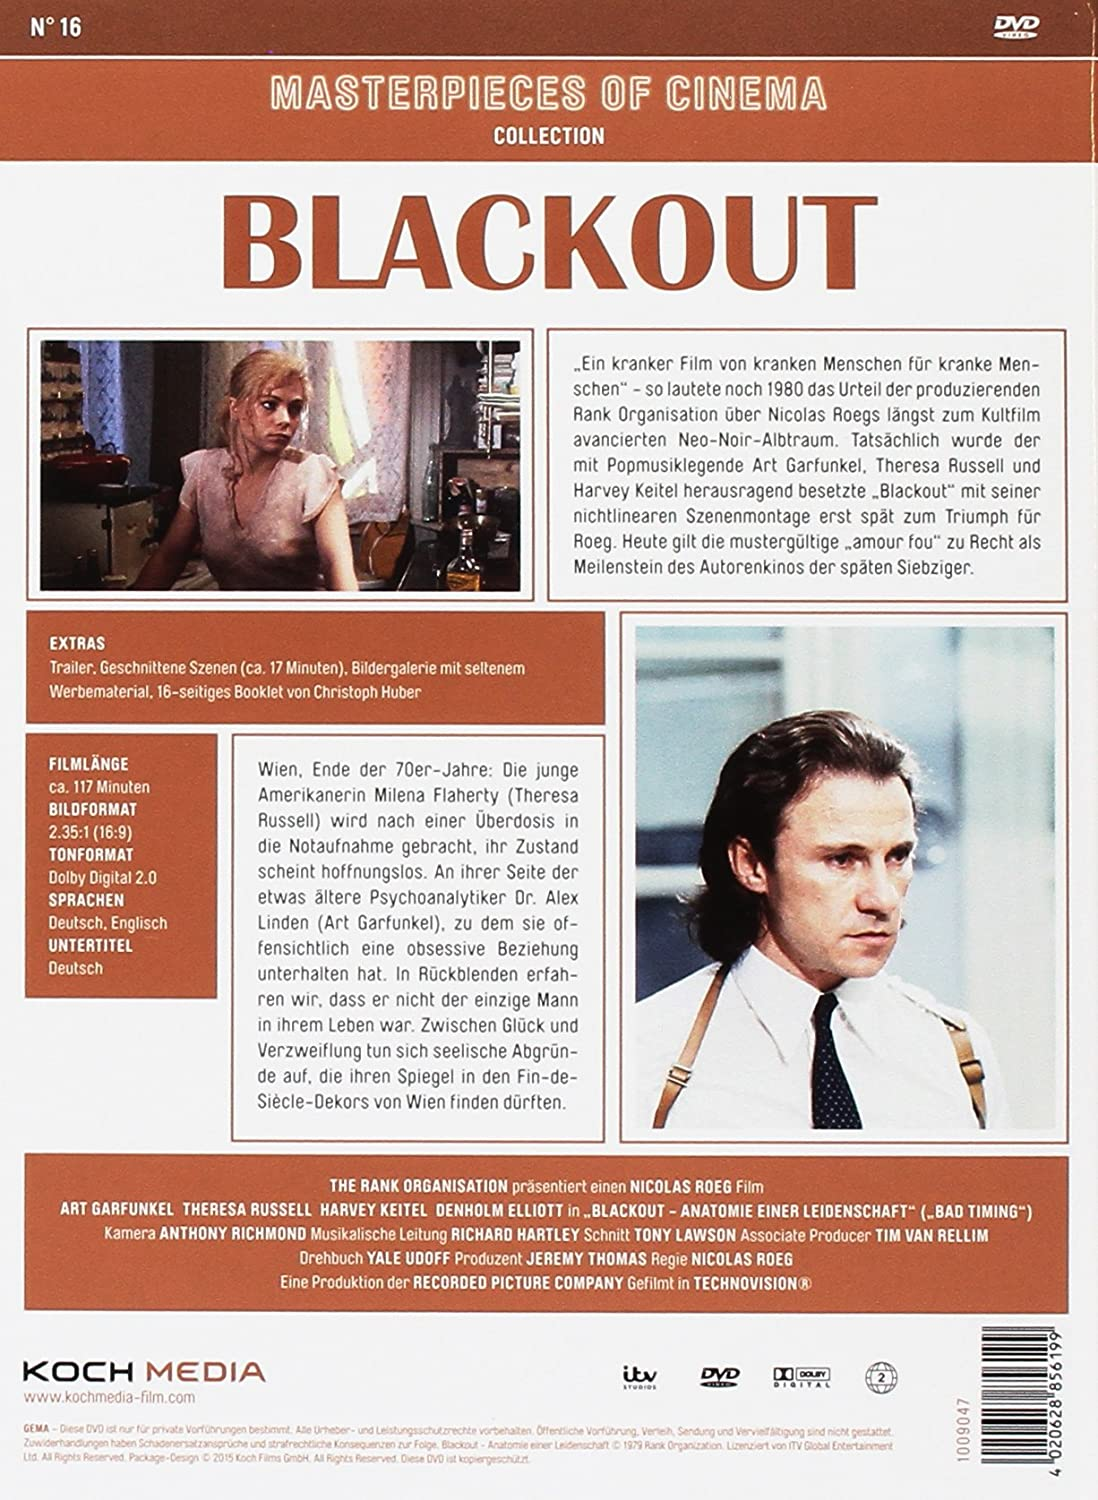 Blackout - Anatomie einer Leidenschaft, 1 DVD: Amazon.co.uk: DVD ...